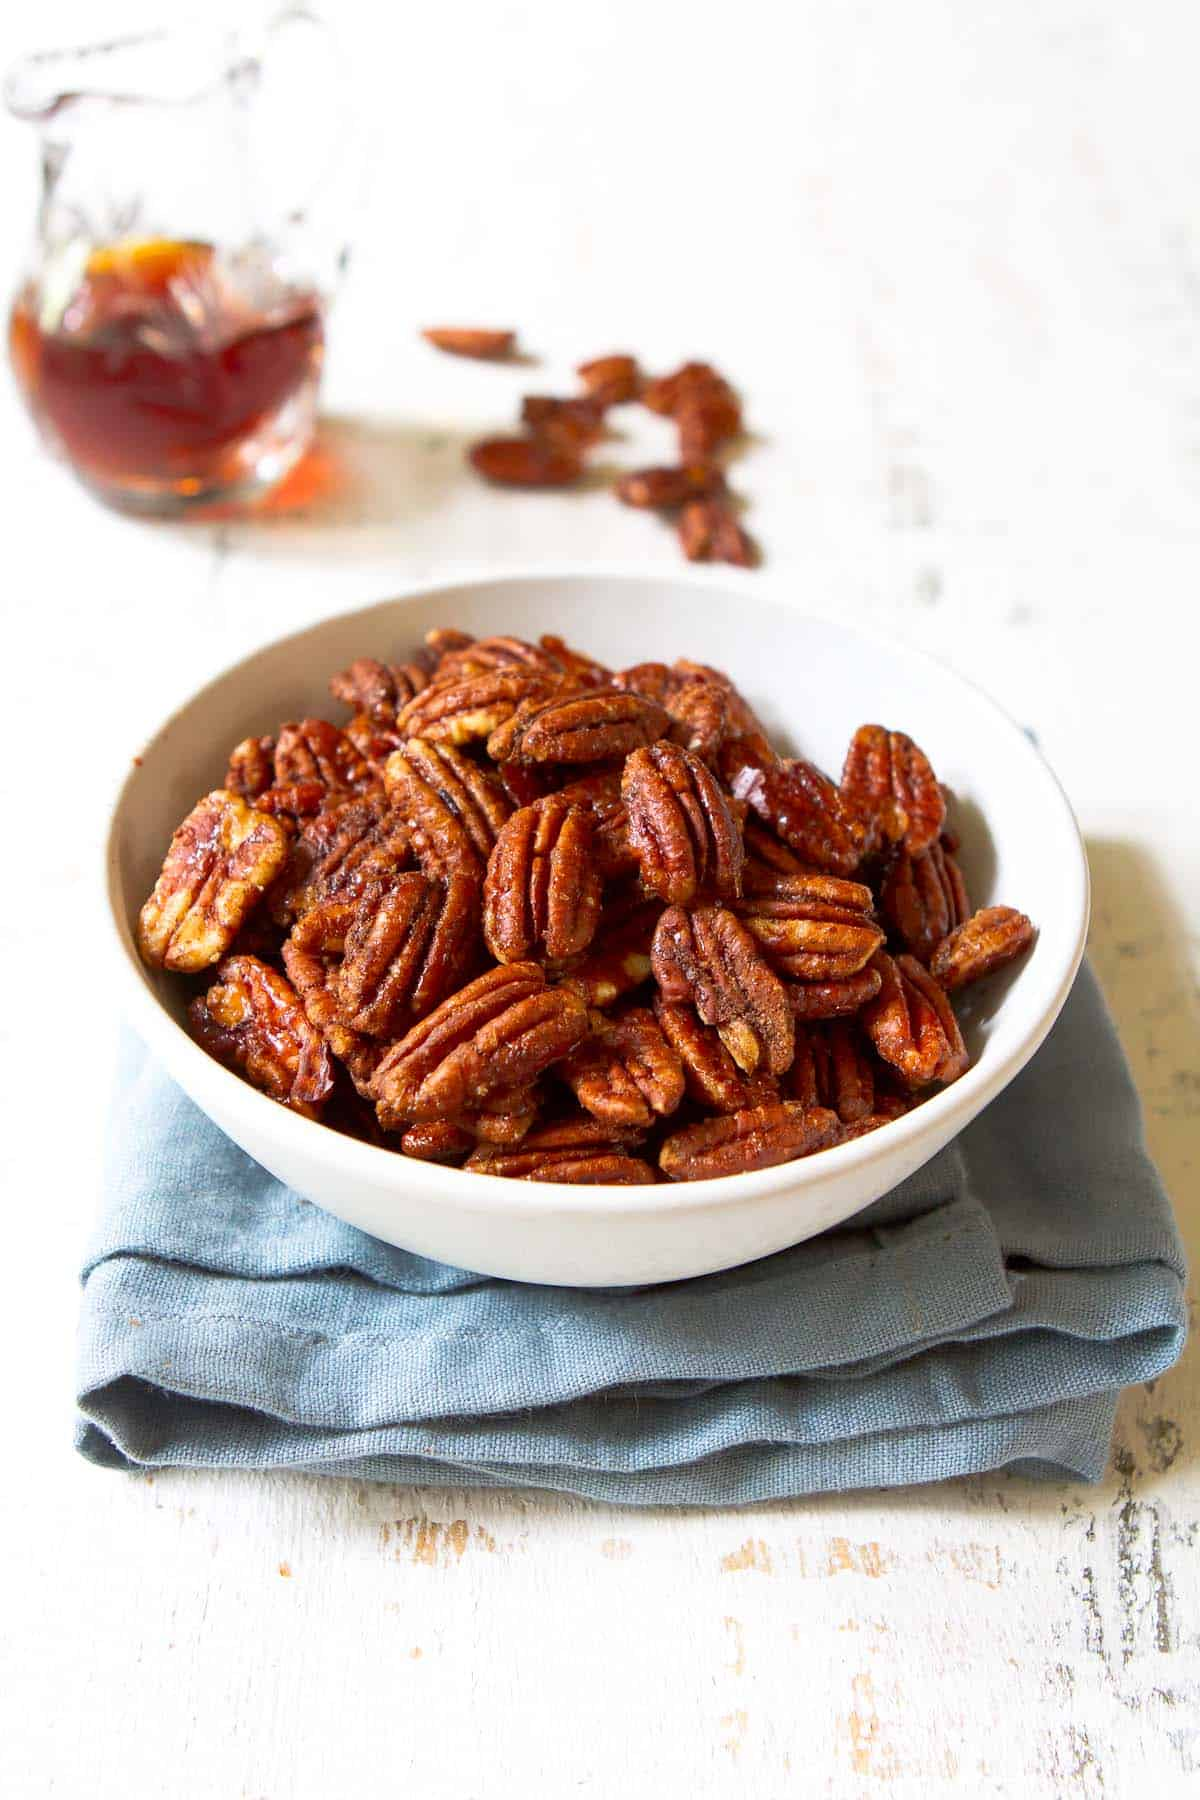 It's almost impossible to stop eating these maple pecans! Toss these into a salad, wrap them up as a gift or snack on them all day long.   Candied   Glazed   Maple syrup   Holiday   Christmas